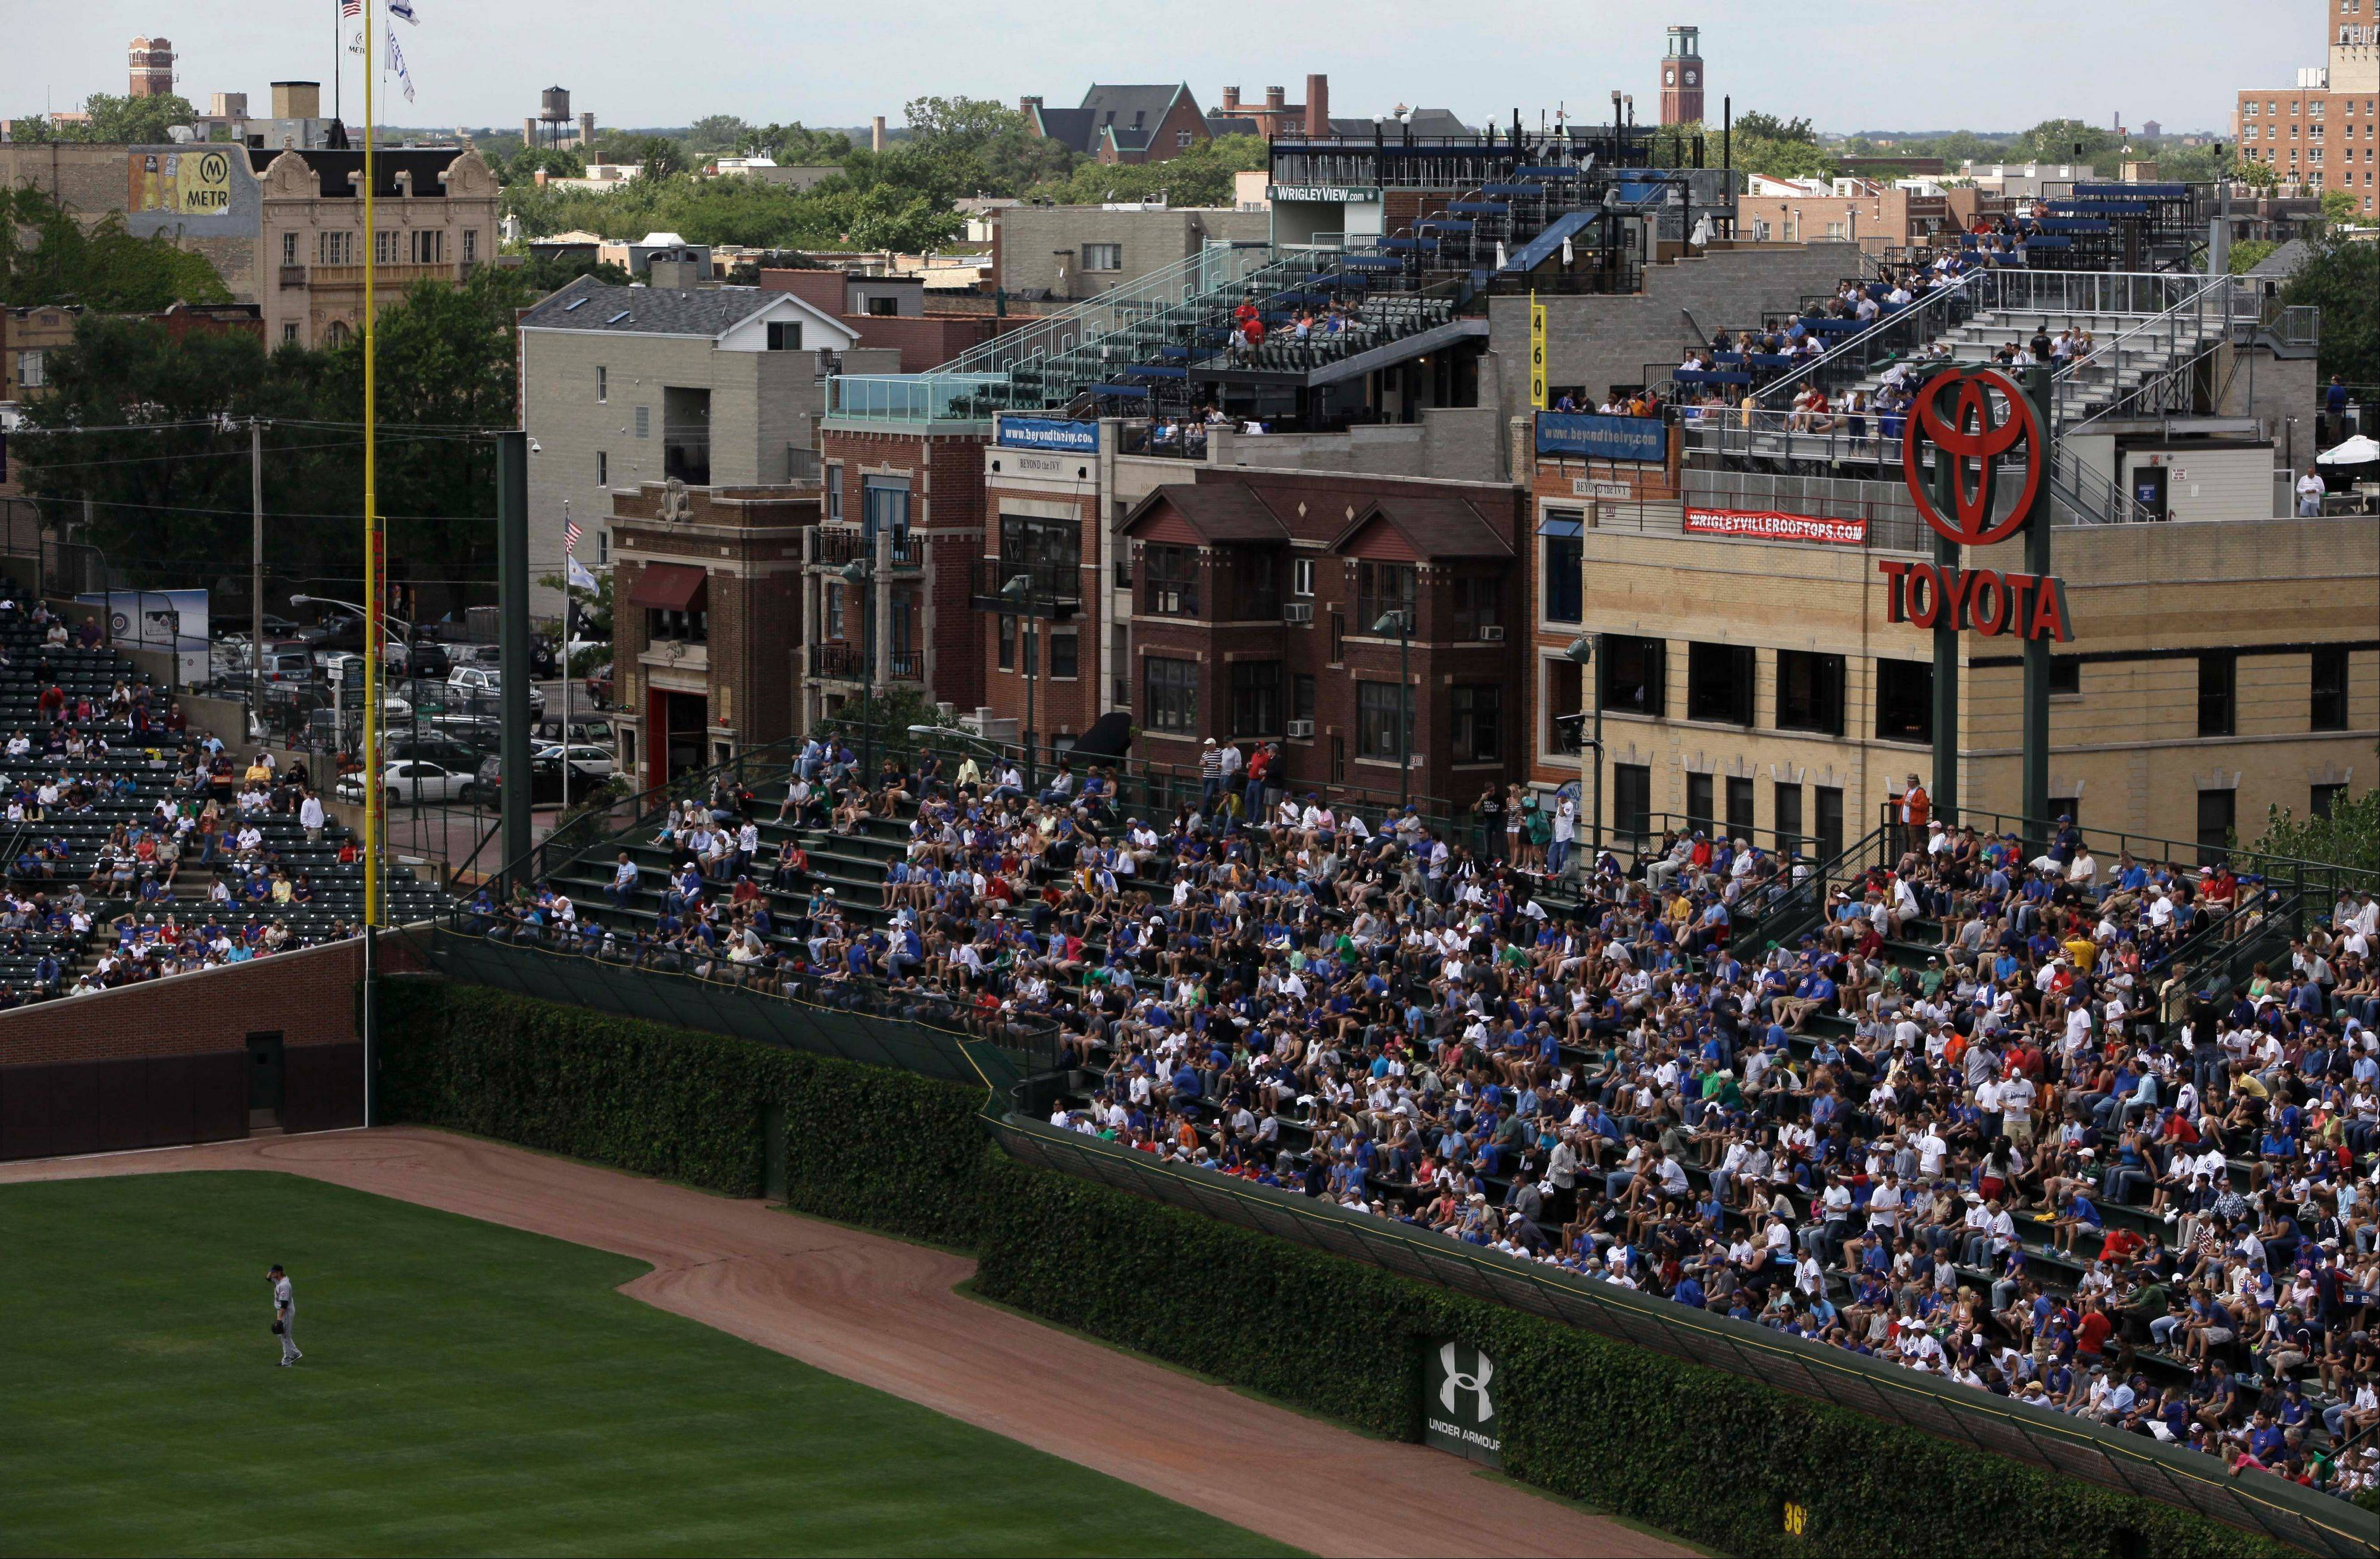 Members of the Wrigleyville Rooftop Association, responding to a proposal by the Cubs calling for the city to lift some landmark restrictions as part of a plan to renovate Wrigley Field, have come out with their own proposal. They want to see digital signs installed to raise revenue for the Cubs, city and community in exchange for protecting their views of the historic ballpark.